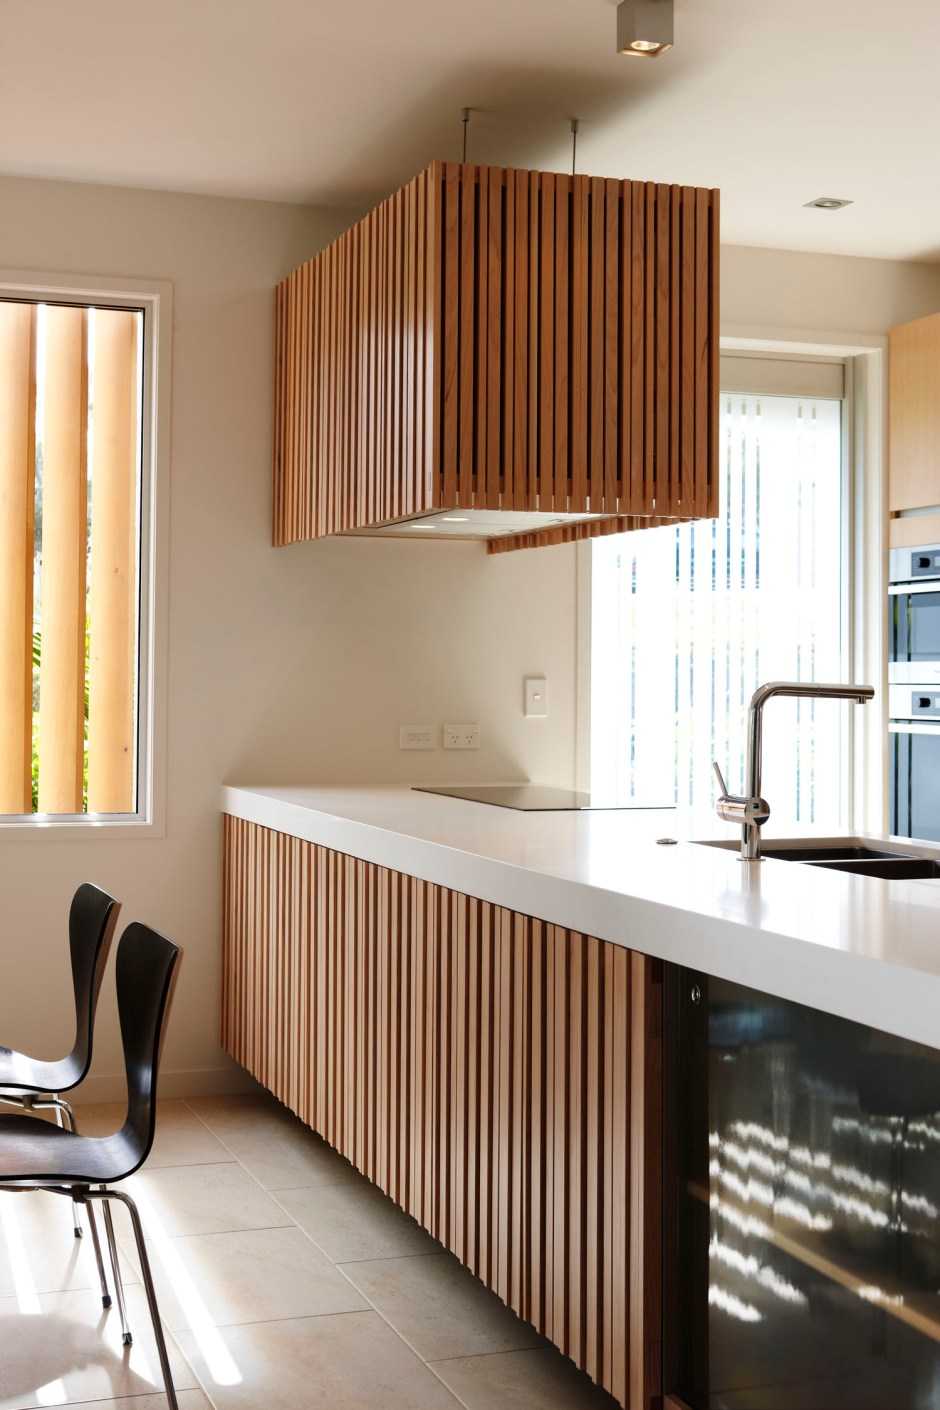 Dave Strachan townhouse kitchen links with exterior timber slats